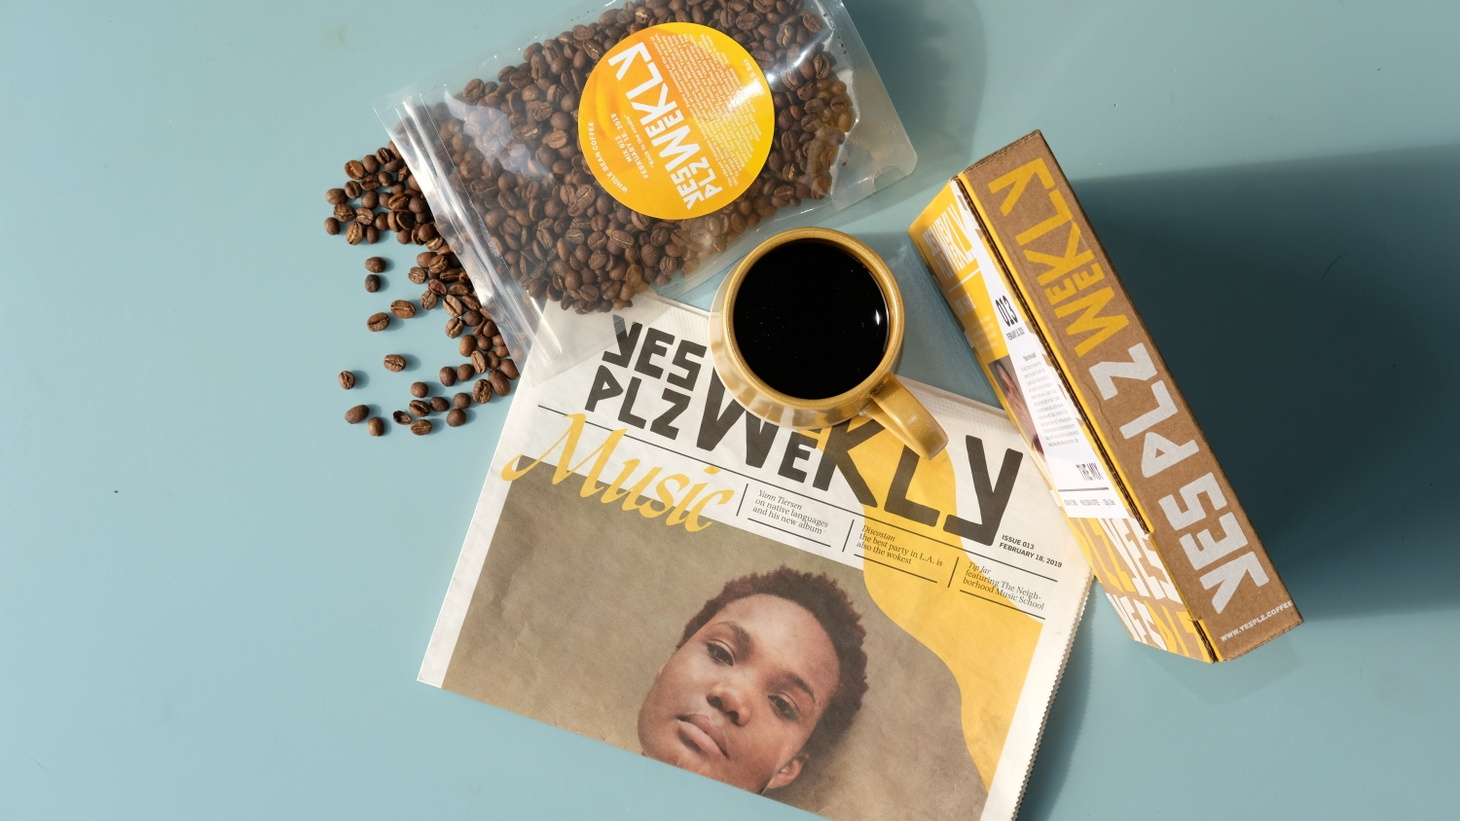 Yes Plz is a coffee subscription and a magazine that makes coffee blends with 'zines.